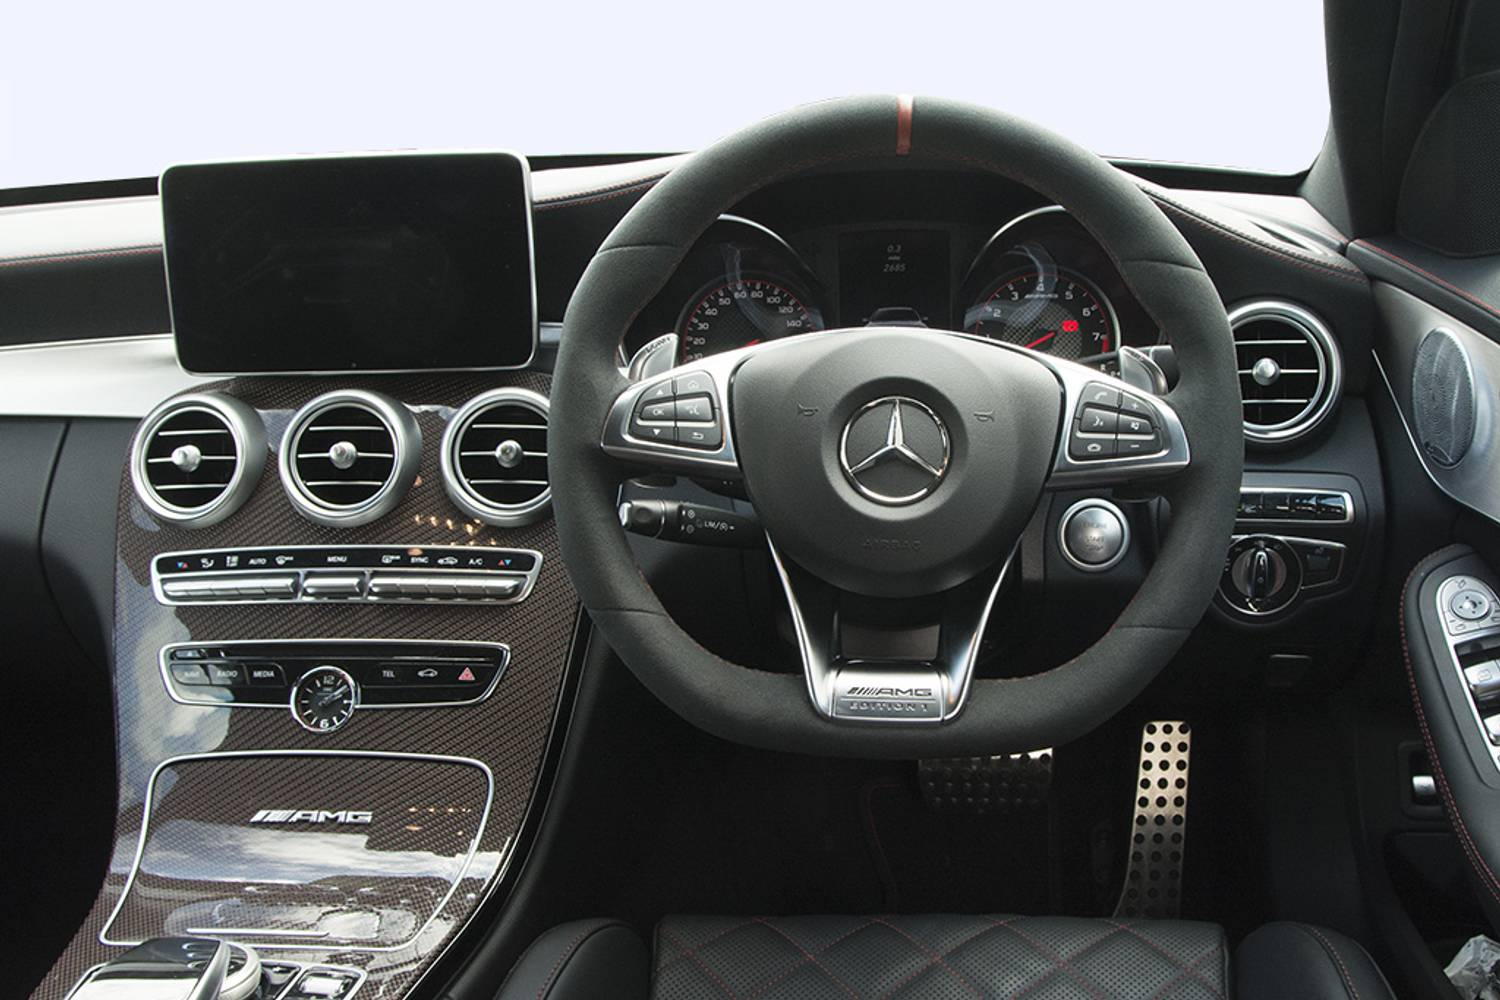 new mercedes benz c class amg estate c43 4matic premium plus 5 door auto 2016 for sale. Black Bedroom Furniture Sets. Home Design Ideas